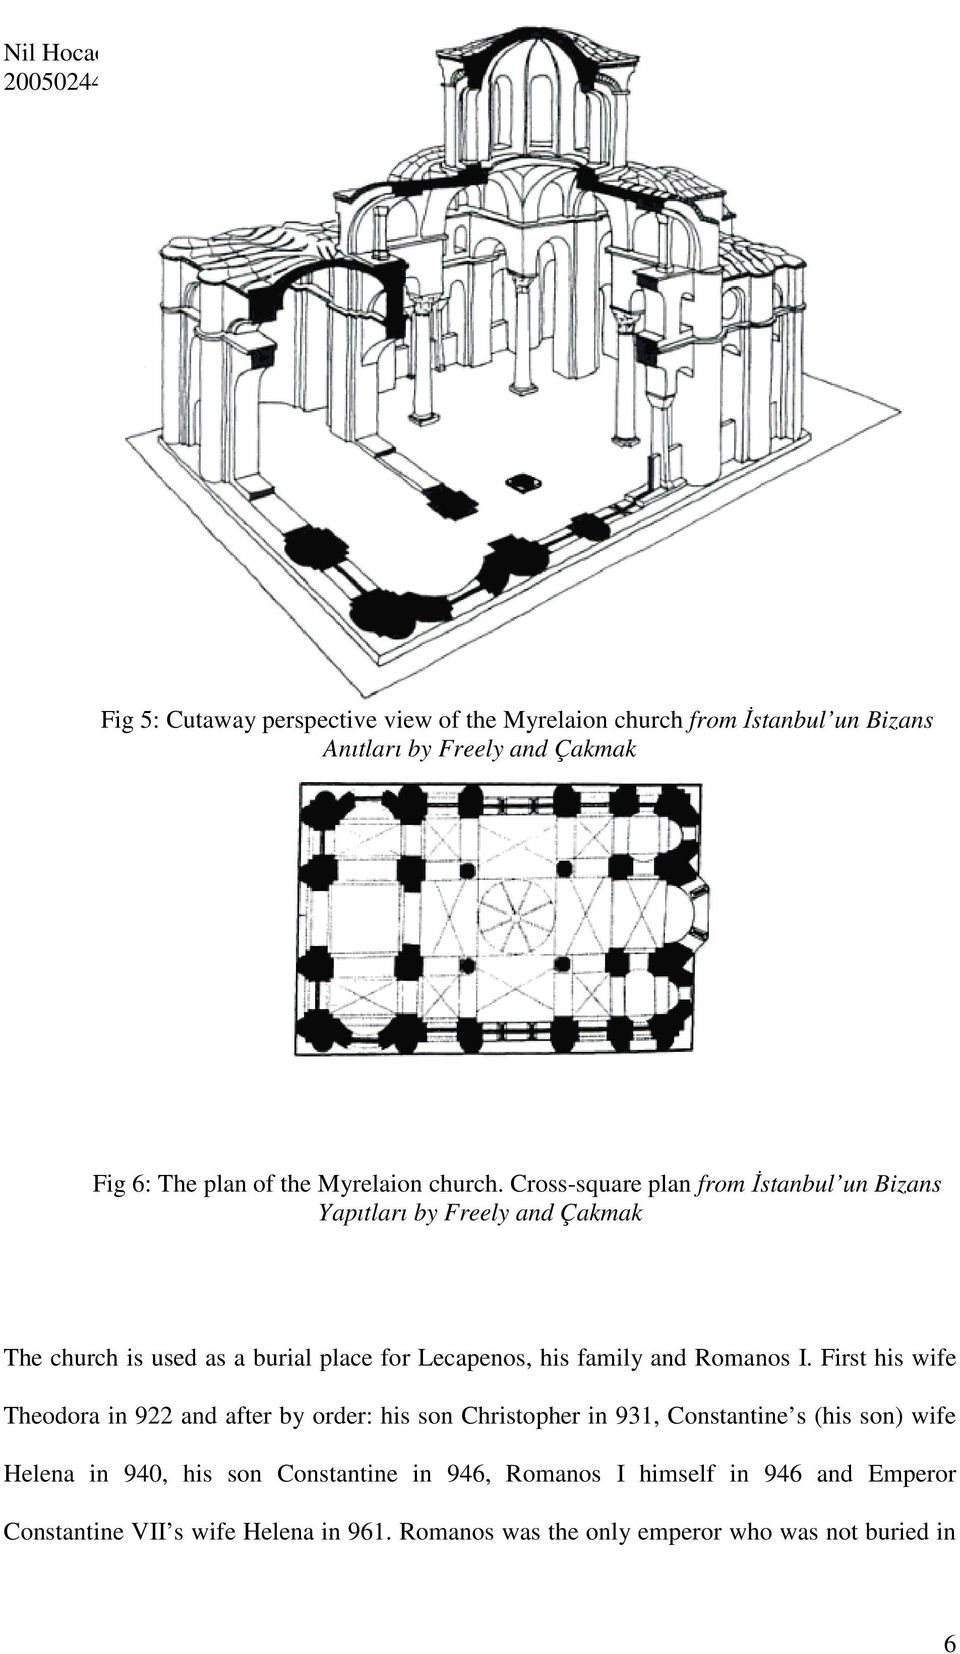 Cross-square plan from İstanbul un Bizans Yapıtları by Freely and Çakmak The church is used as a burial place for Lecapenos, his family and